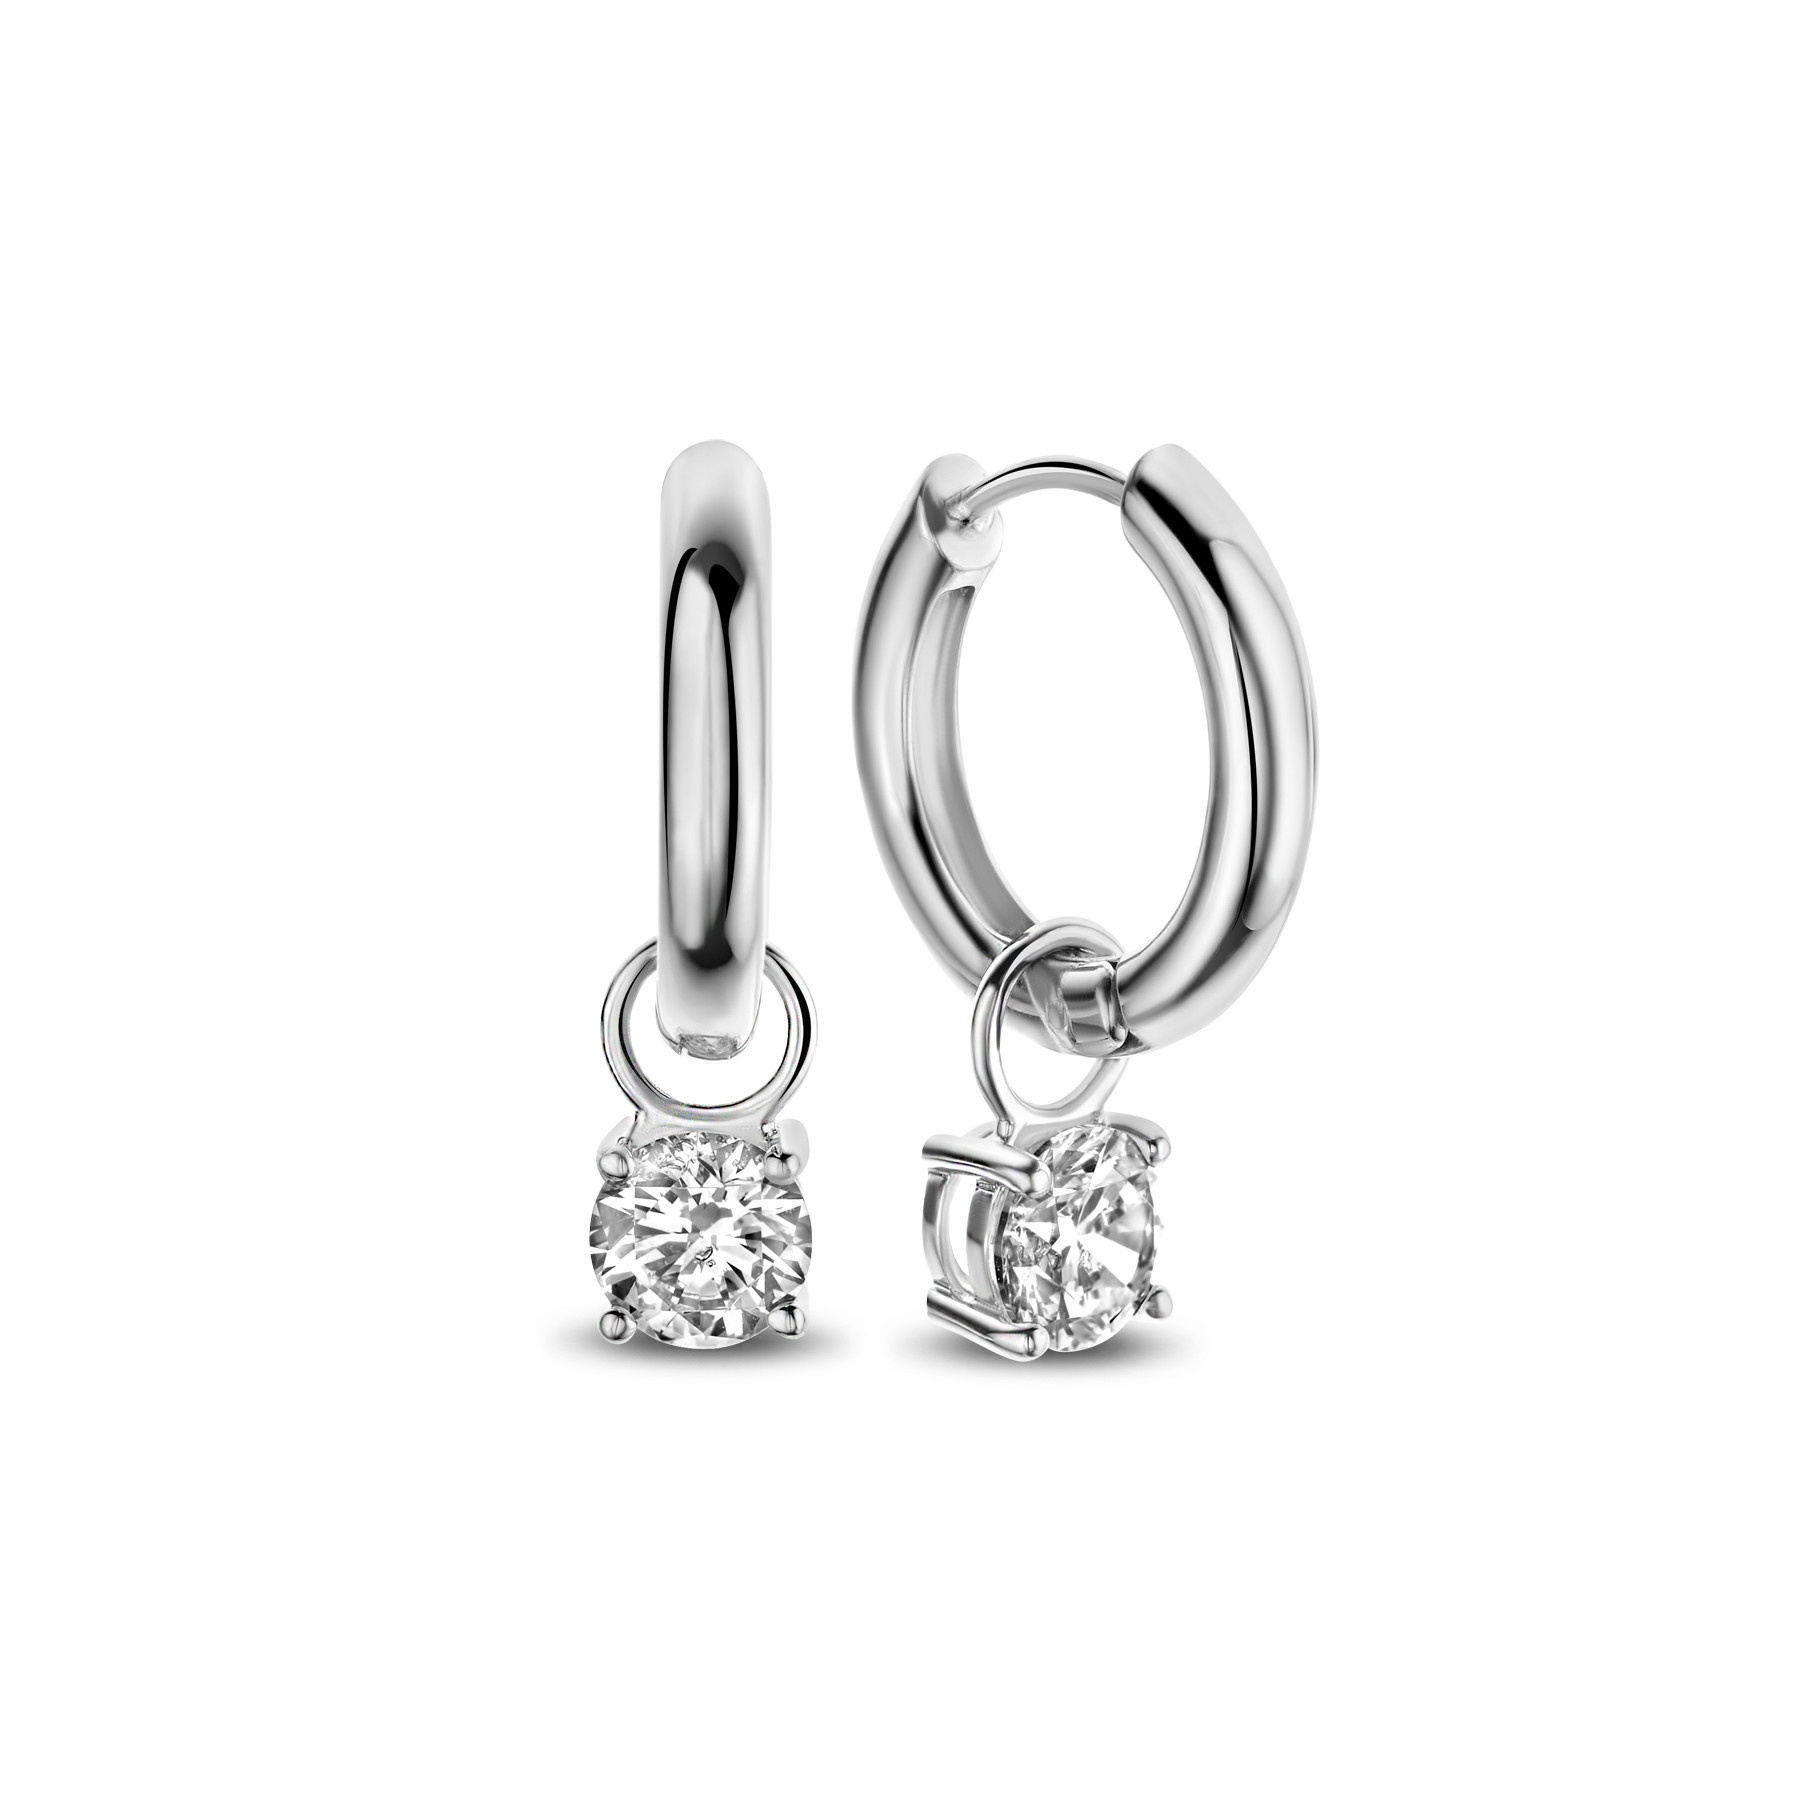 Parte di Me Bibbiena Poppi 925 sterling silver earrings zirconia